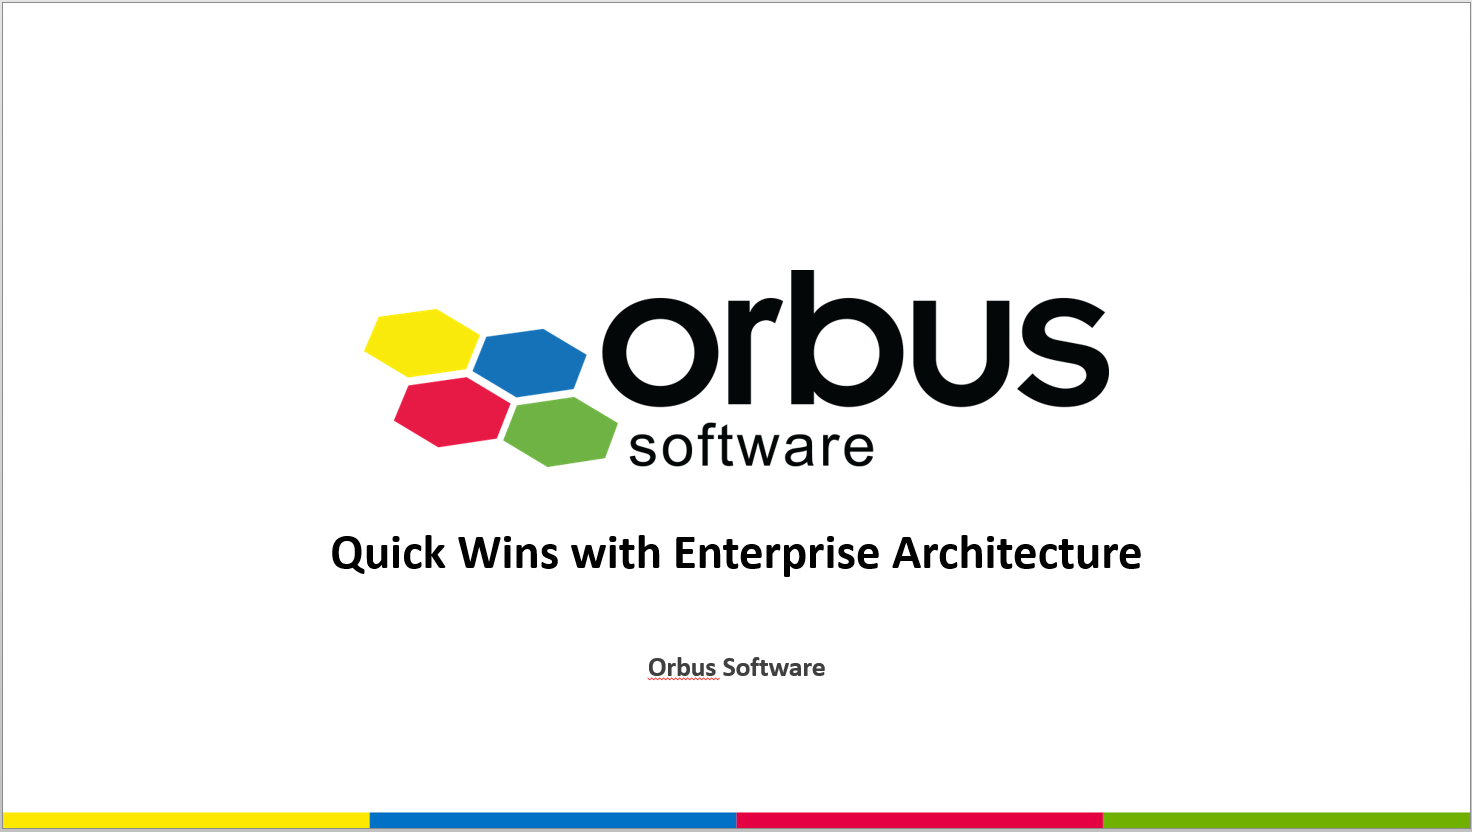 Quick Wins with Enterprise Architecture